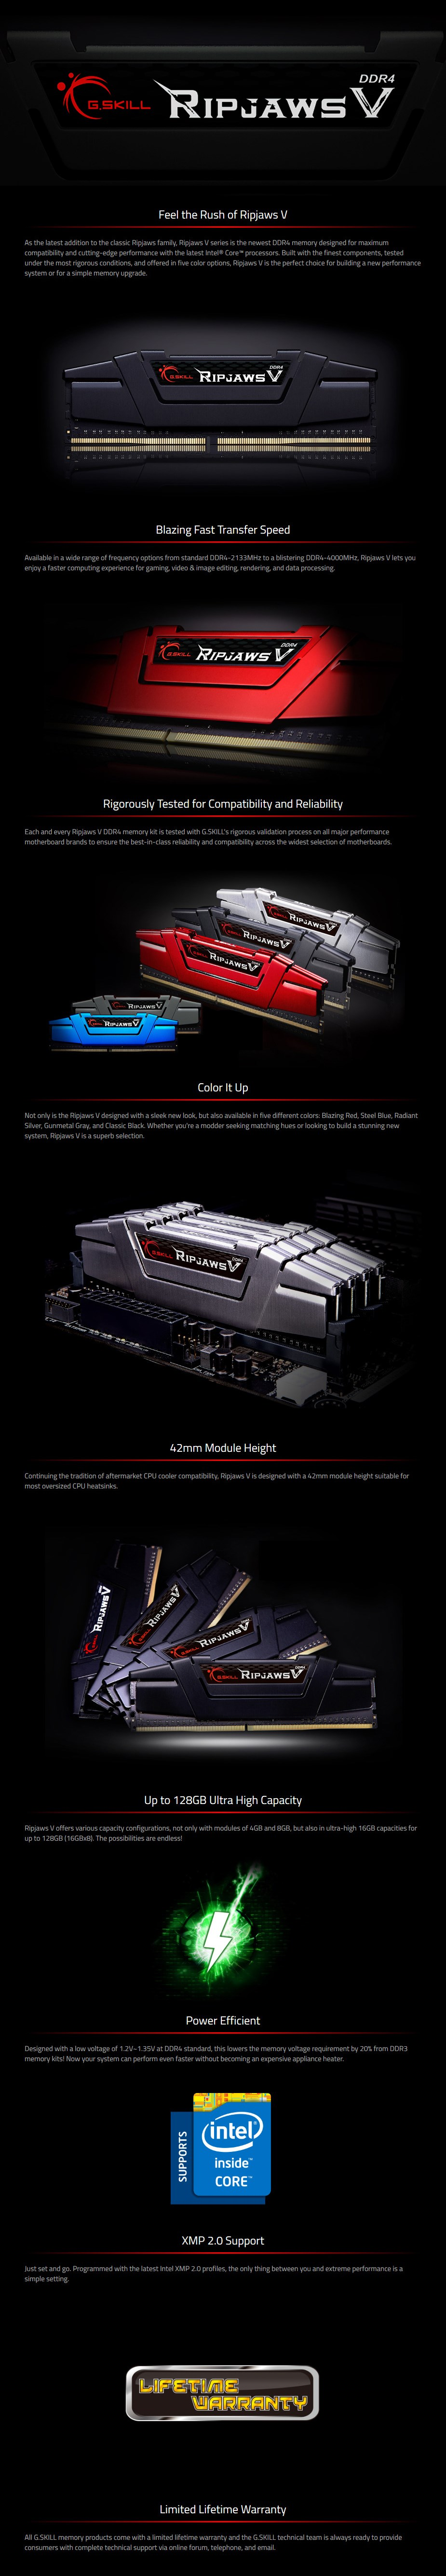 G.Skill Ripjaws V 64GB (4x 16GB) DDR4 3600MHz Memory - Overview 1